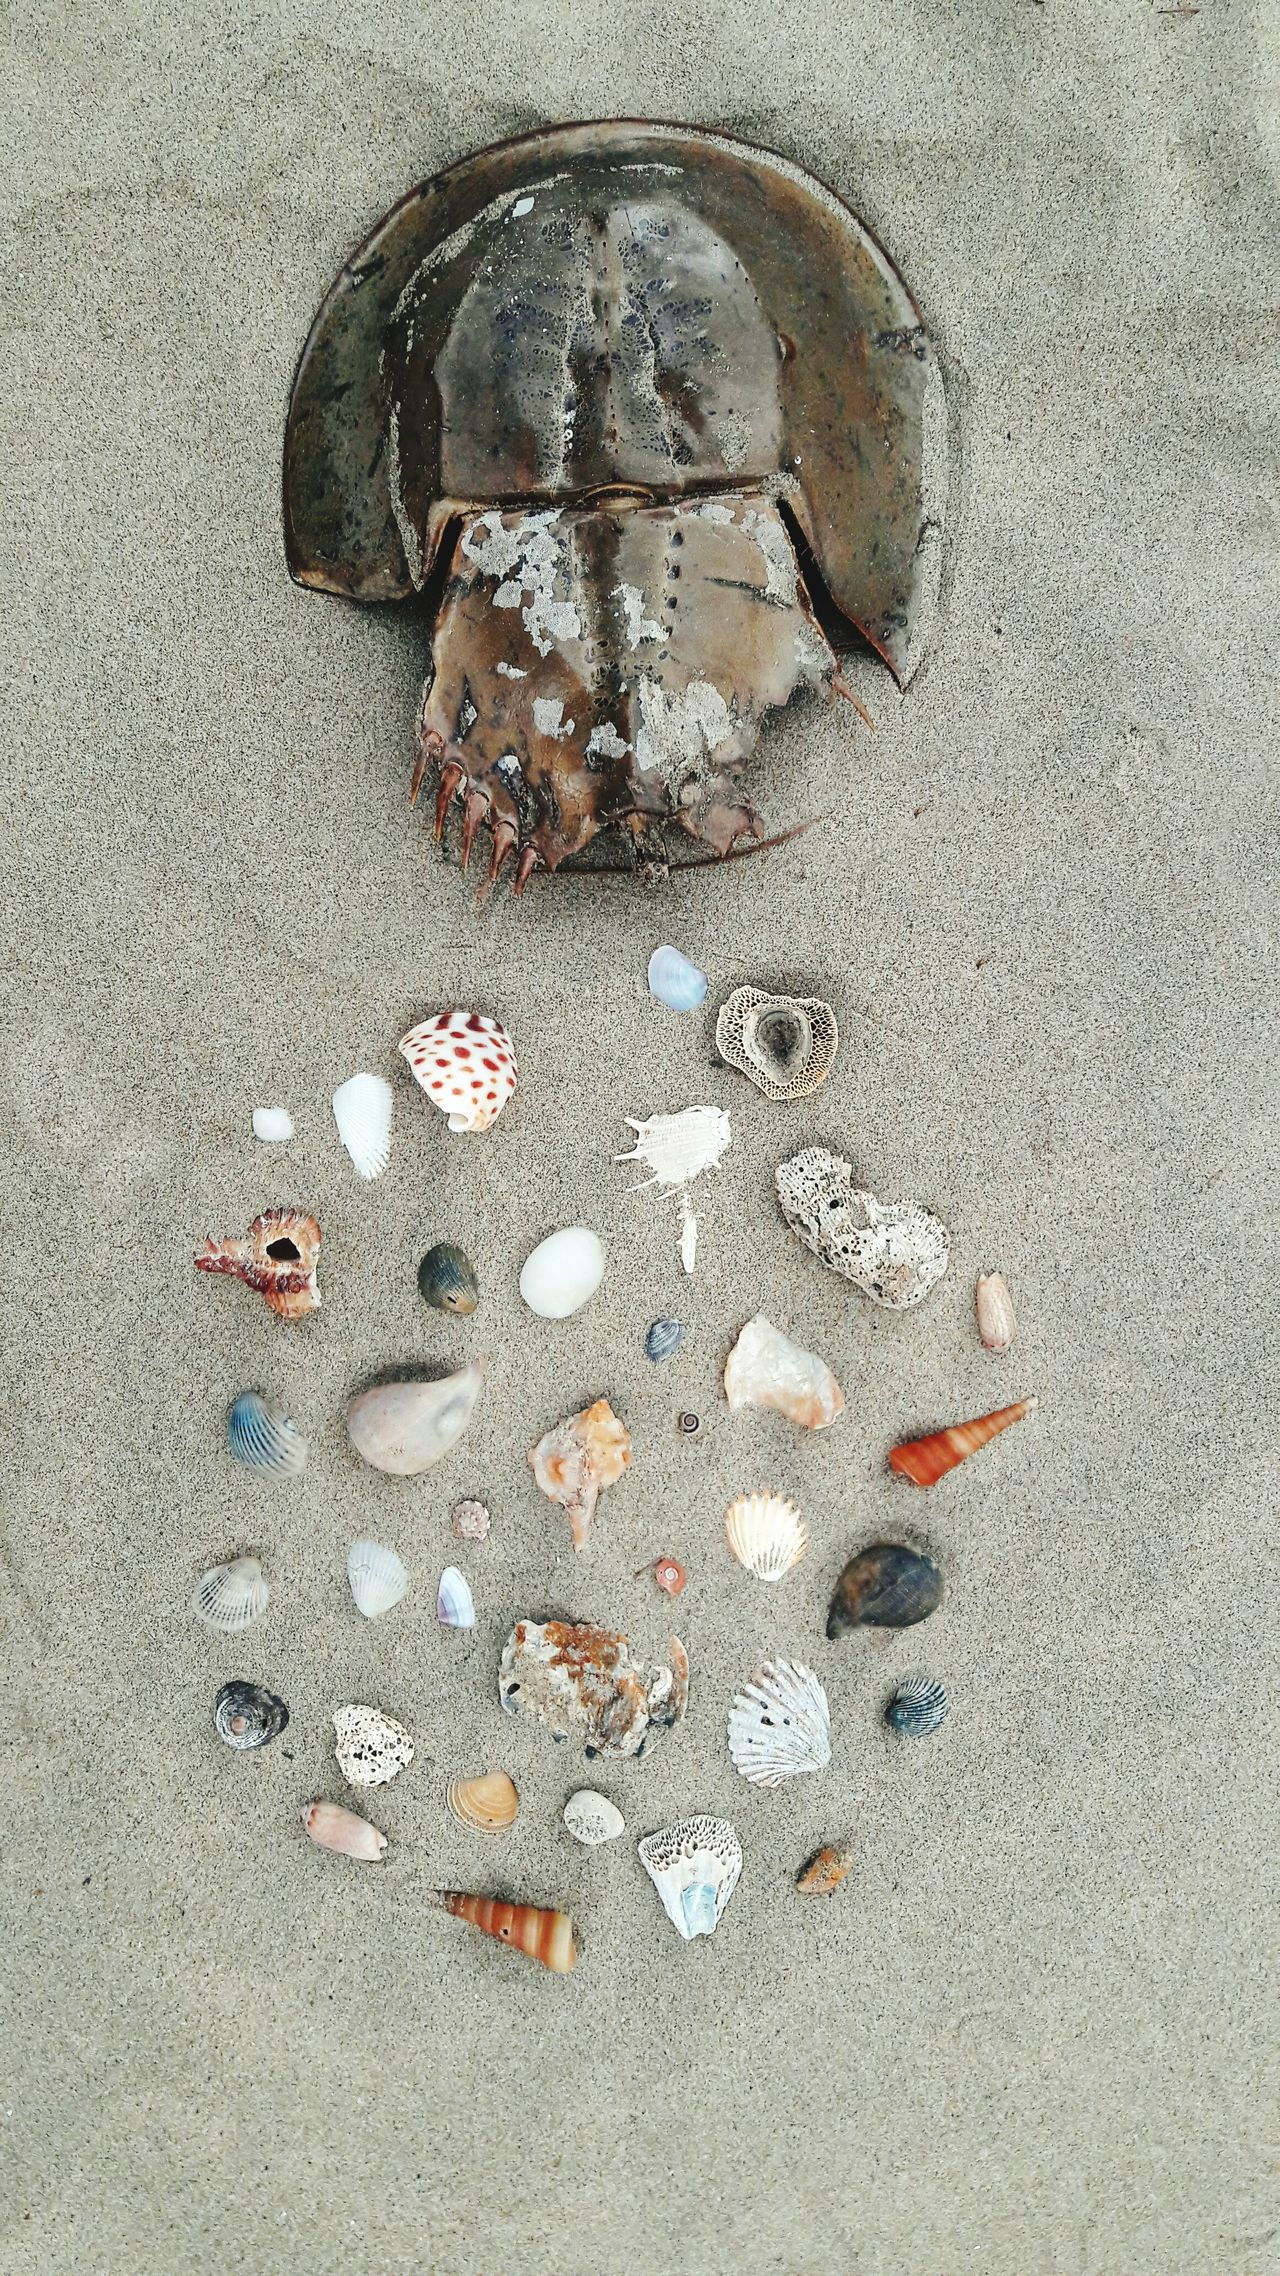 beautiful but dead. Sea Life Sea Creature Horseshoe Crab King Crab Looking Down Beach Sand Coastline The Magic Mission Shell Sandy Beach Belangkas Shell Art Shell Photography Shell Beach Shellfishes Shell Collection Shells On Sand Shells Shells Ocean Environment Beach Photography Nature Shore